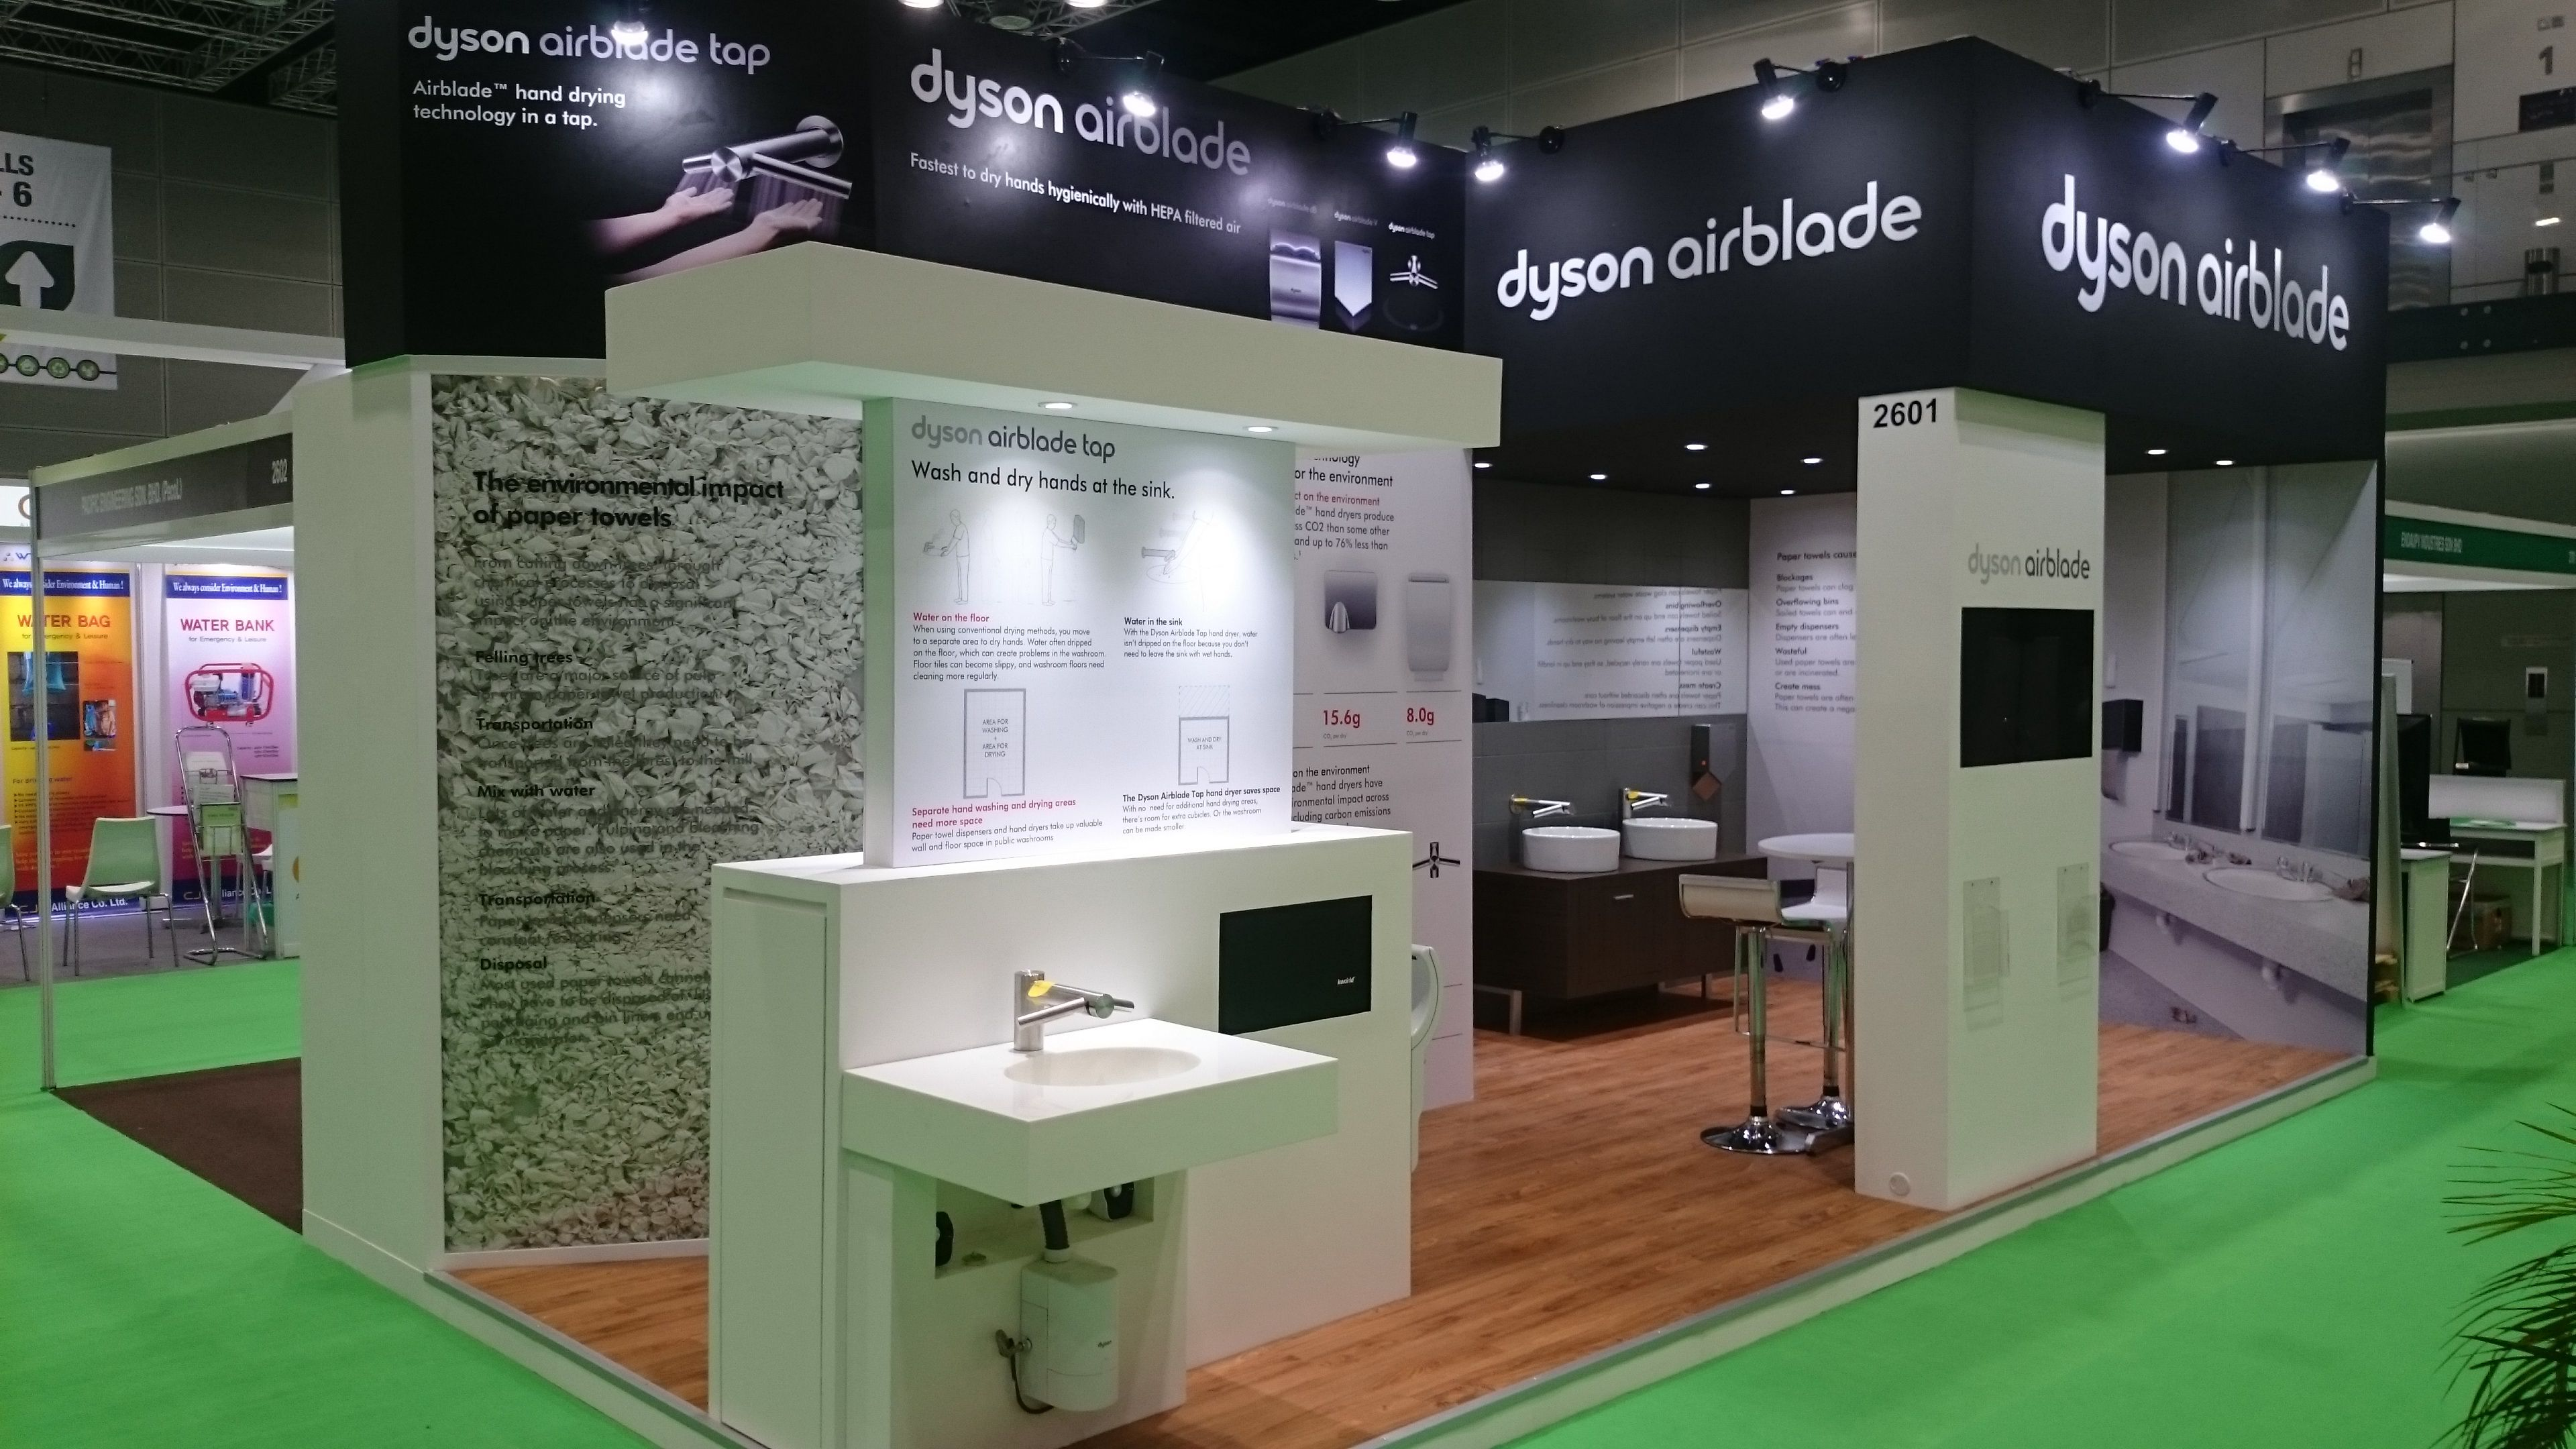 Small Exhibition Stand Sizes : Dyson airblade exhibition stand